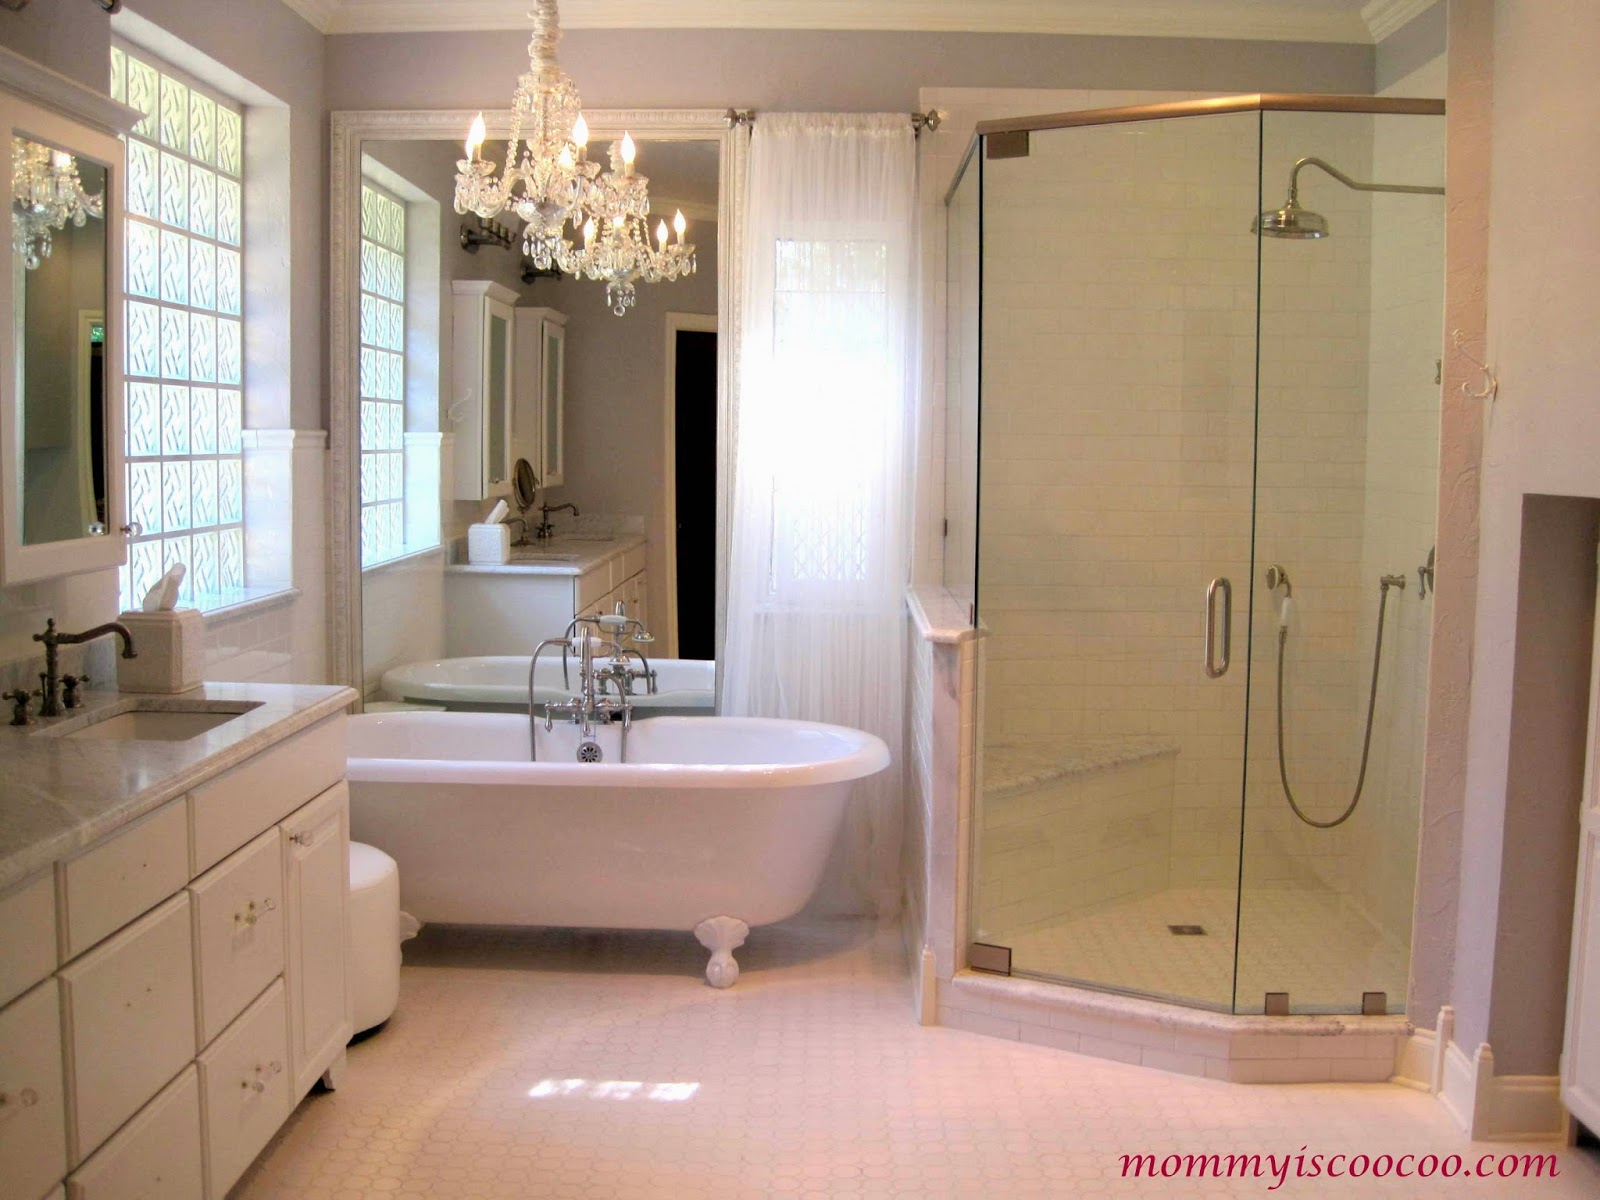 Bathroom Mirror Makeover remodelaholic | how to remove (and reuse) a large builder grade mirror